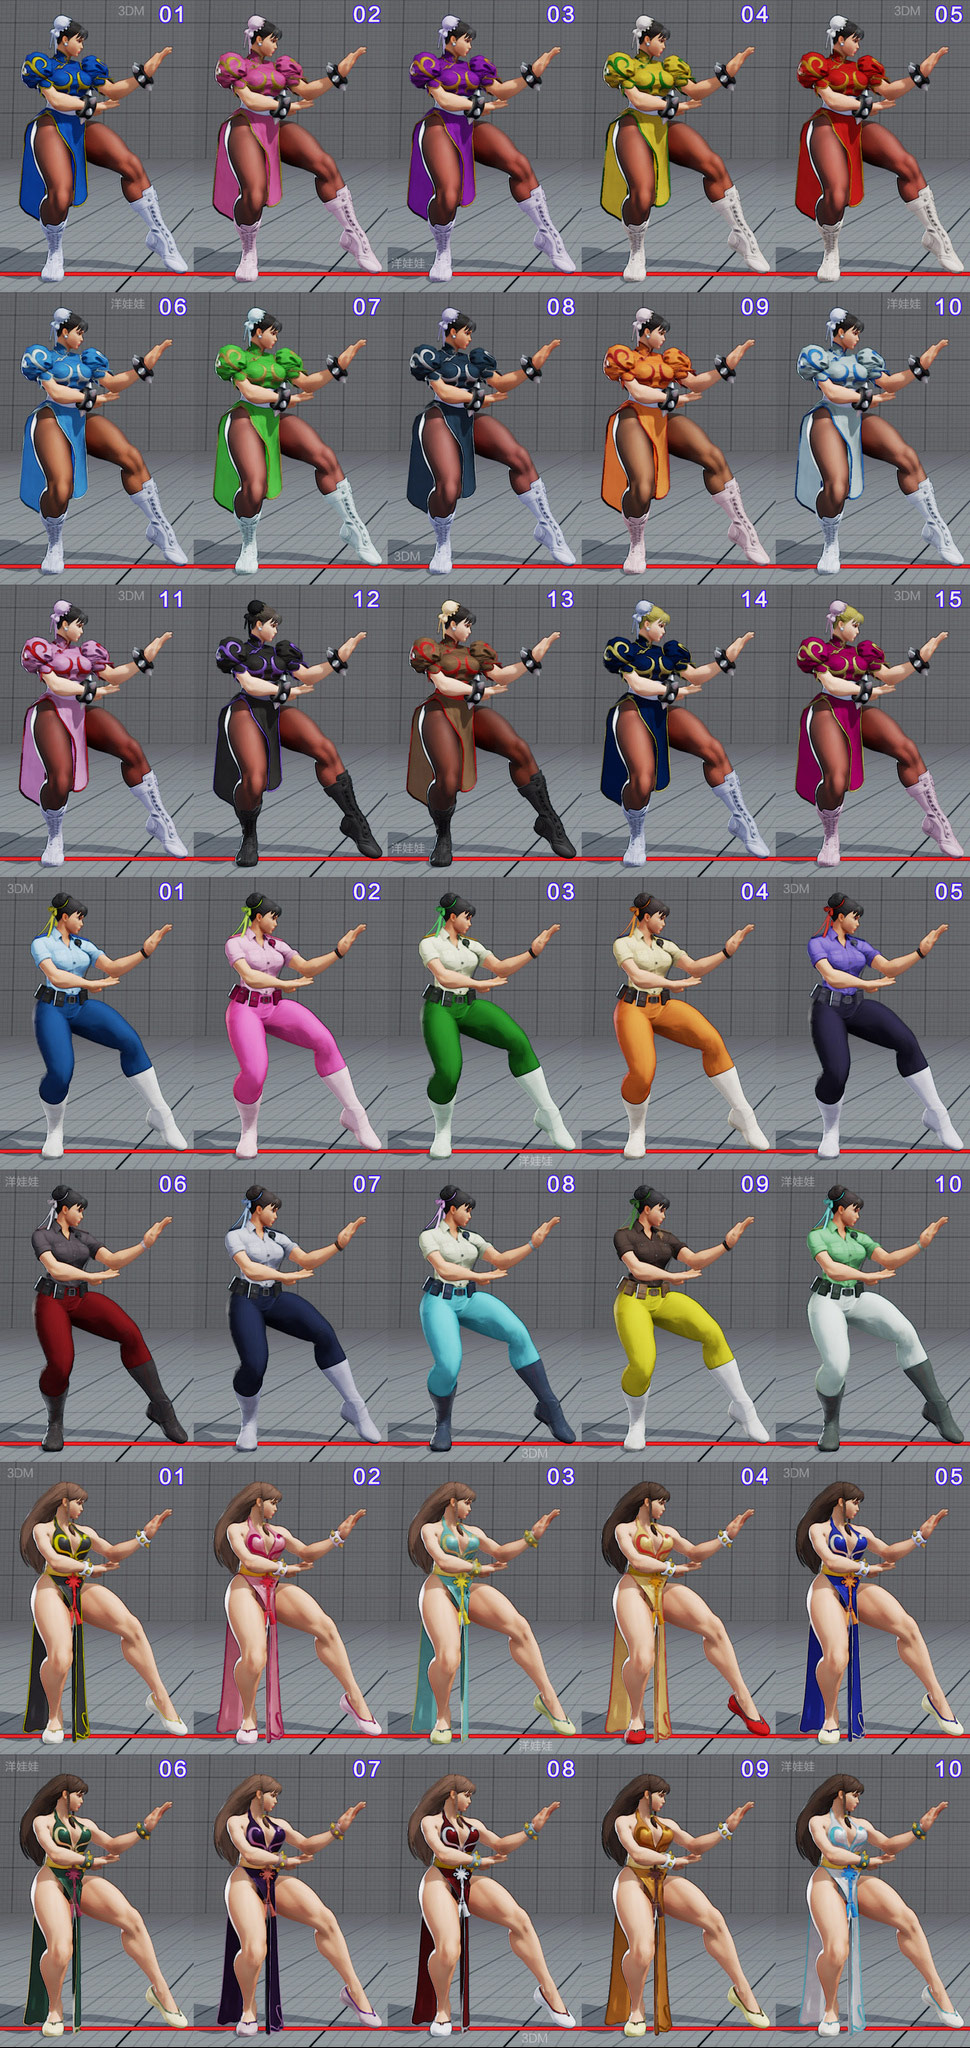 ... for all current costumes in Street Fighter 5 4 out of 18 image gallery Street